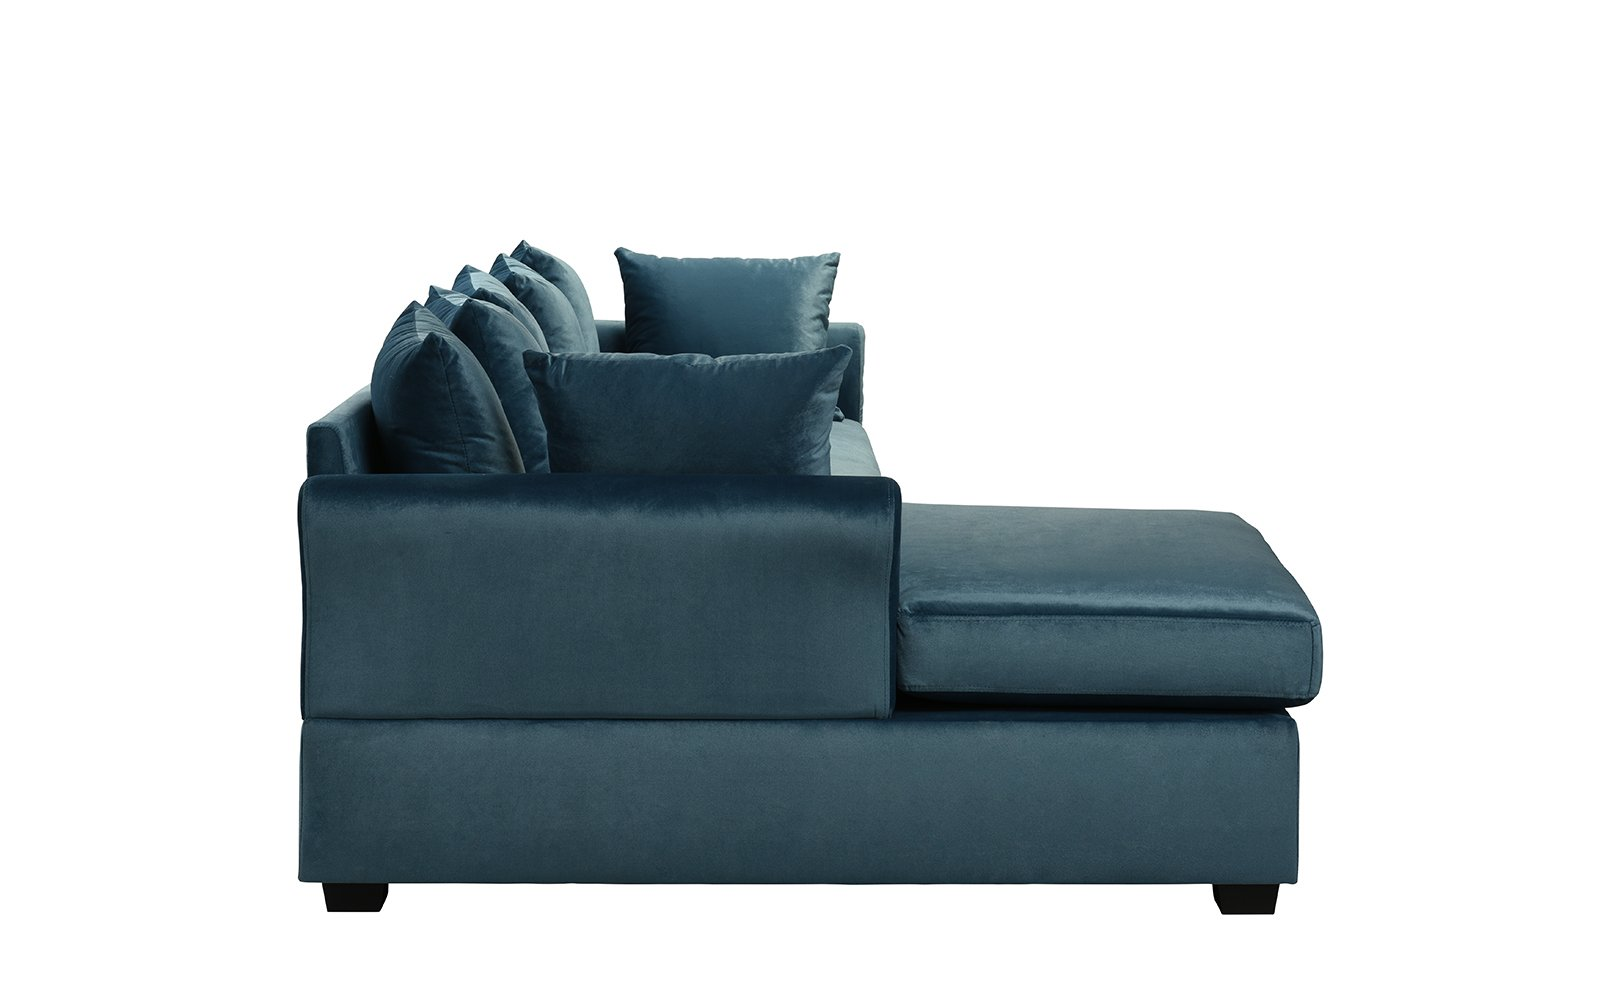 Fine Details About Teal Blue Velvet Sectional Sofa W Loose Back Pillows Left Facing Chaise Lounge Onthecornerstone Fun Painted Chair Ideas Images Onthecornerstoneorg